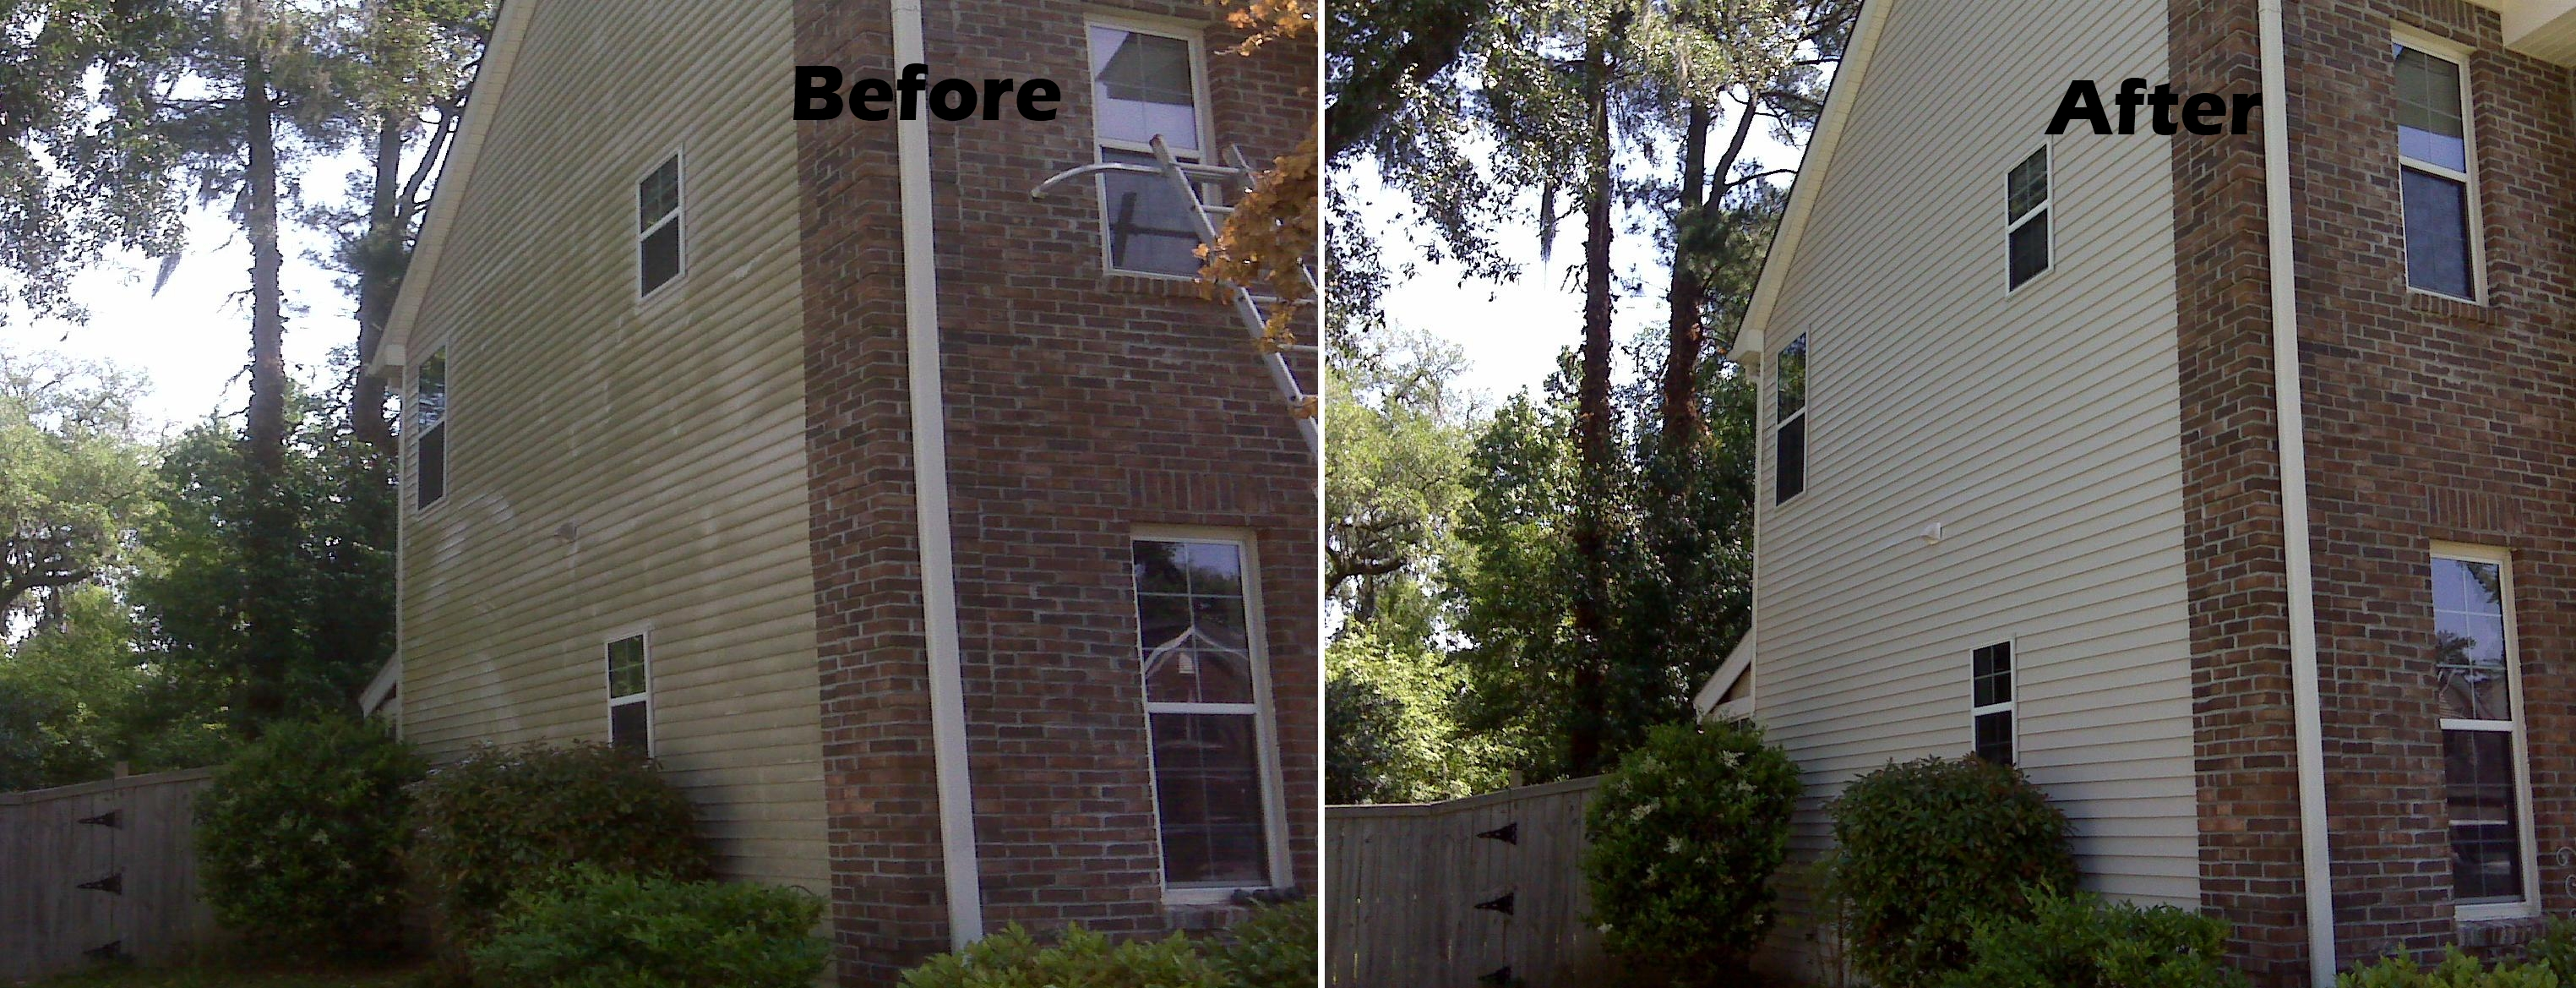 Pressure Washing Company Charleston Sc 843 608 9070